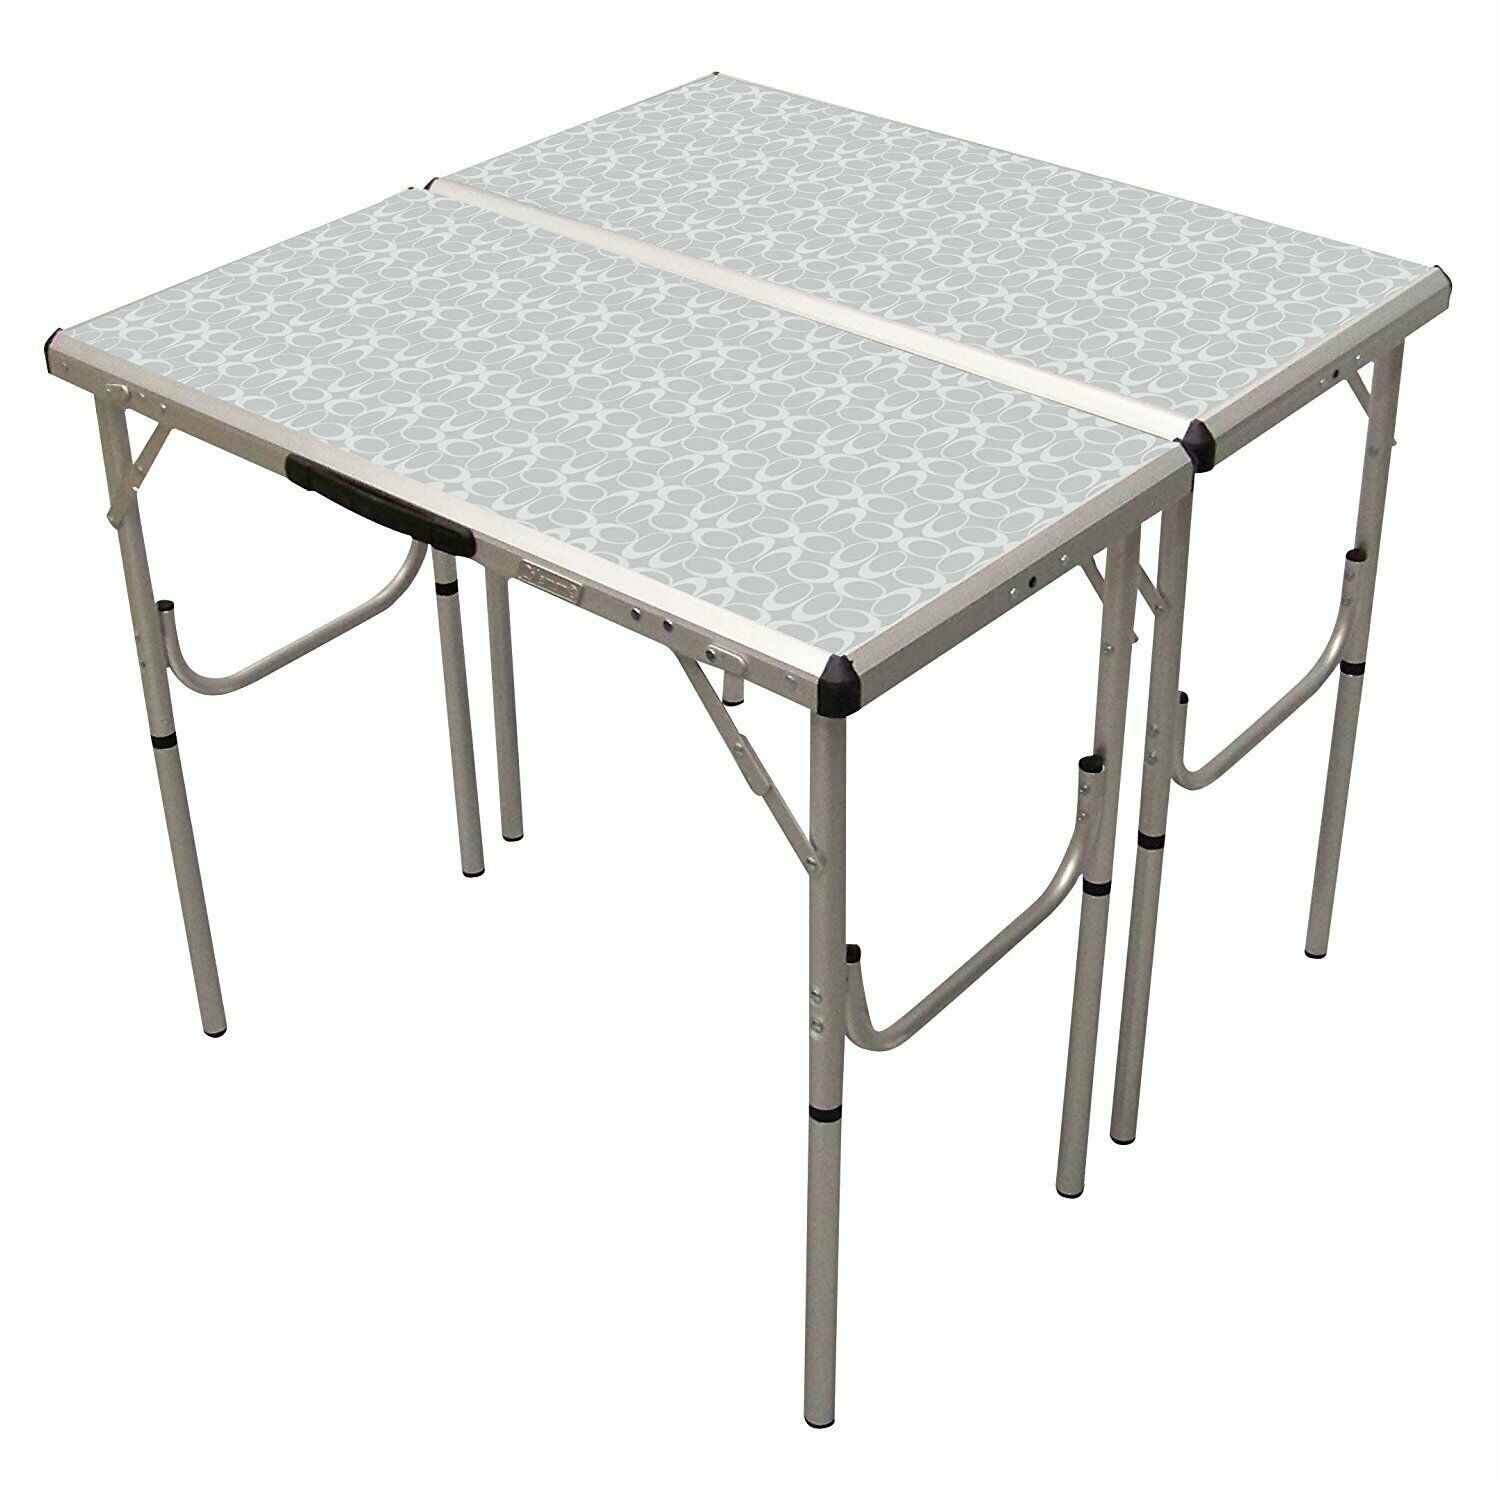 4 In 1 Adjustable Height Folding Camping, Hiking, Fishing Indoor Outdoor Table